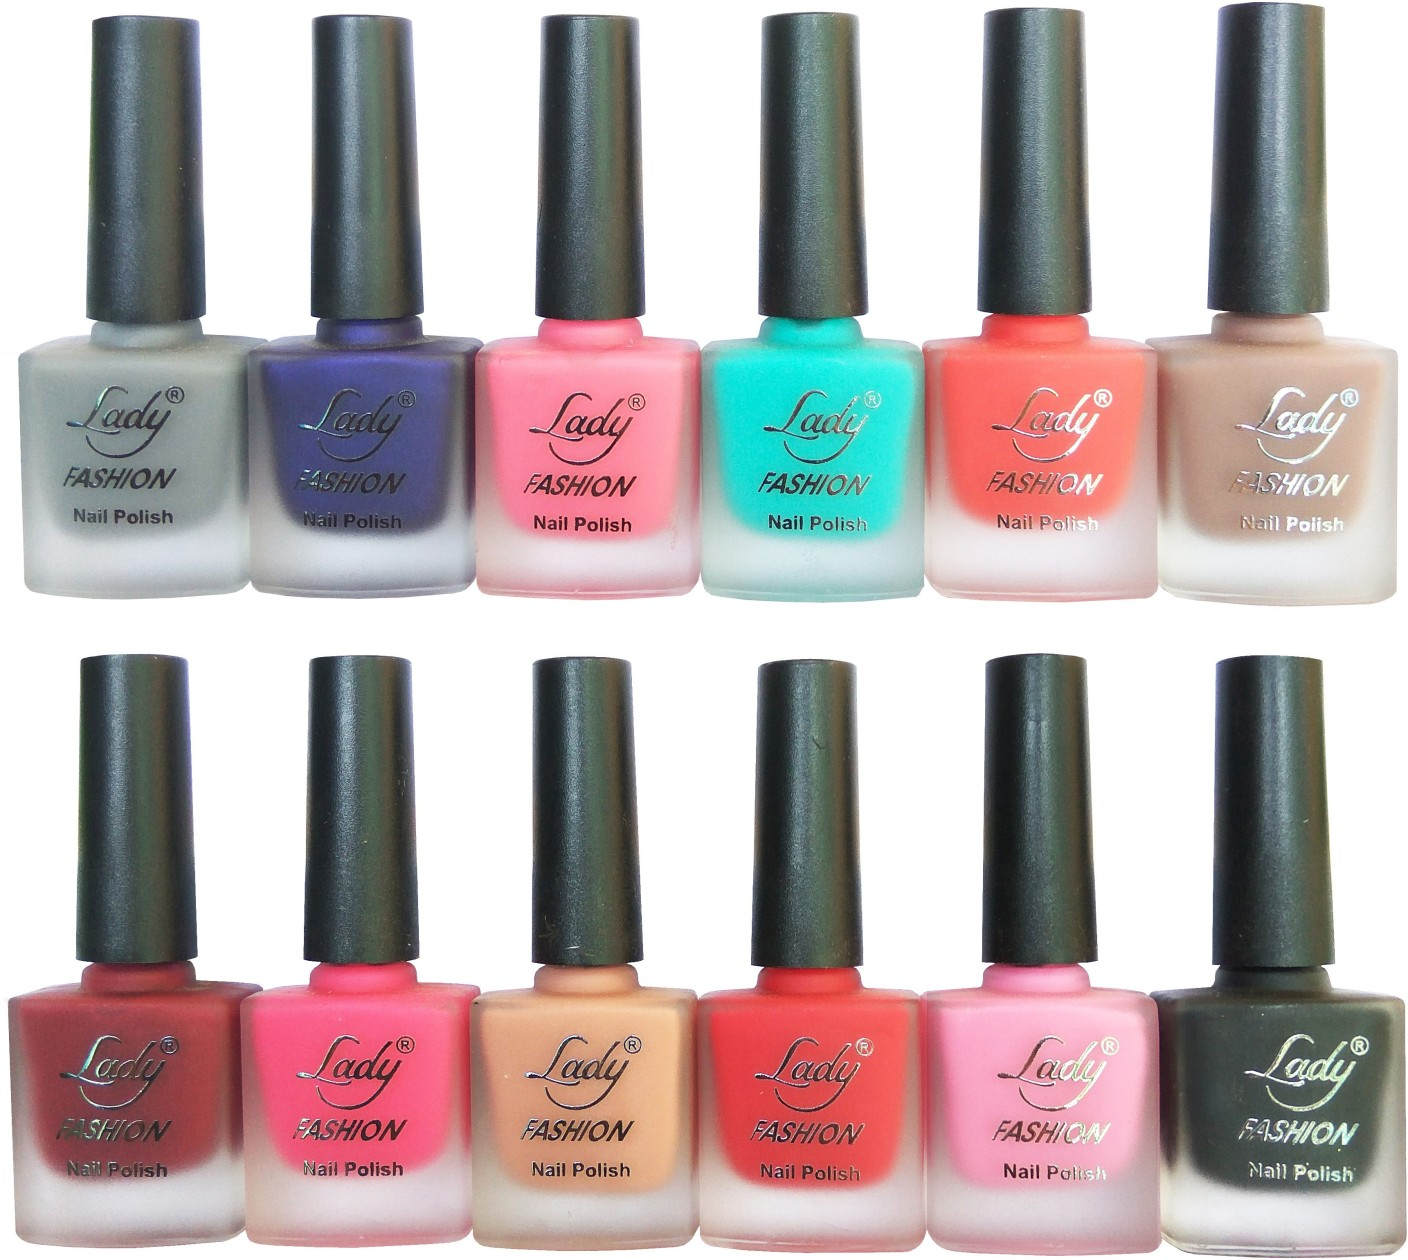 ULTA is your premier source for nail polish in the latest colors and formulas from top brands like OPI, Essie, Butter London and more!